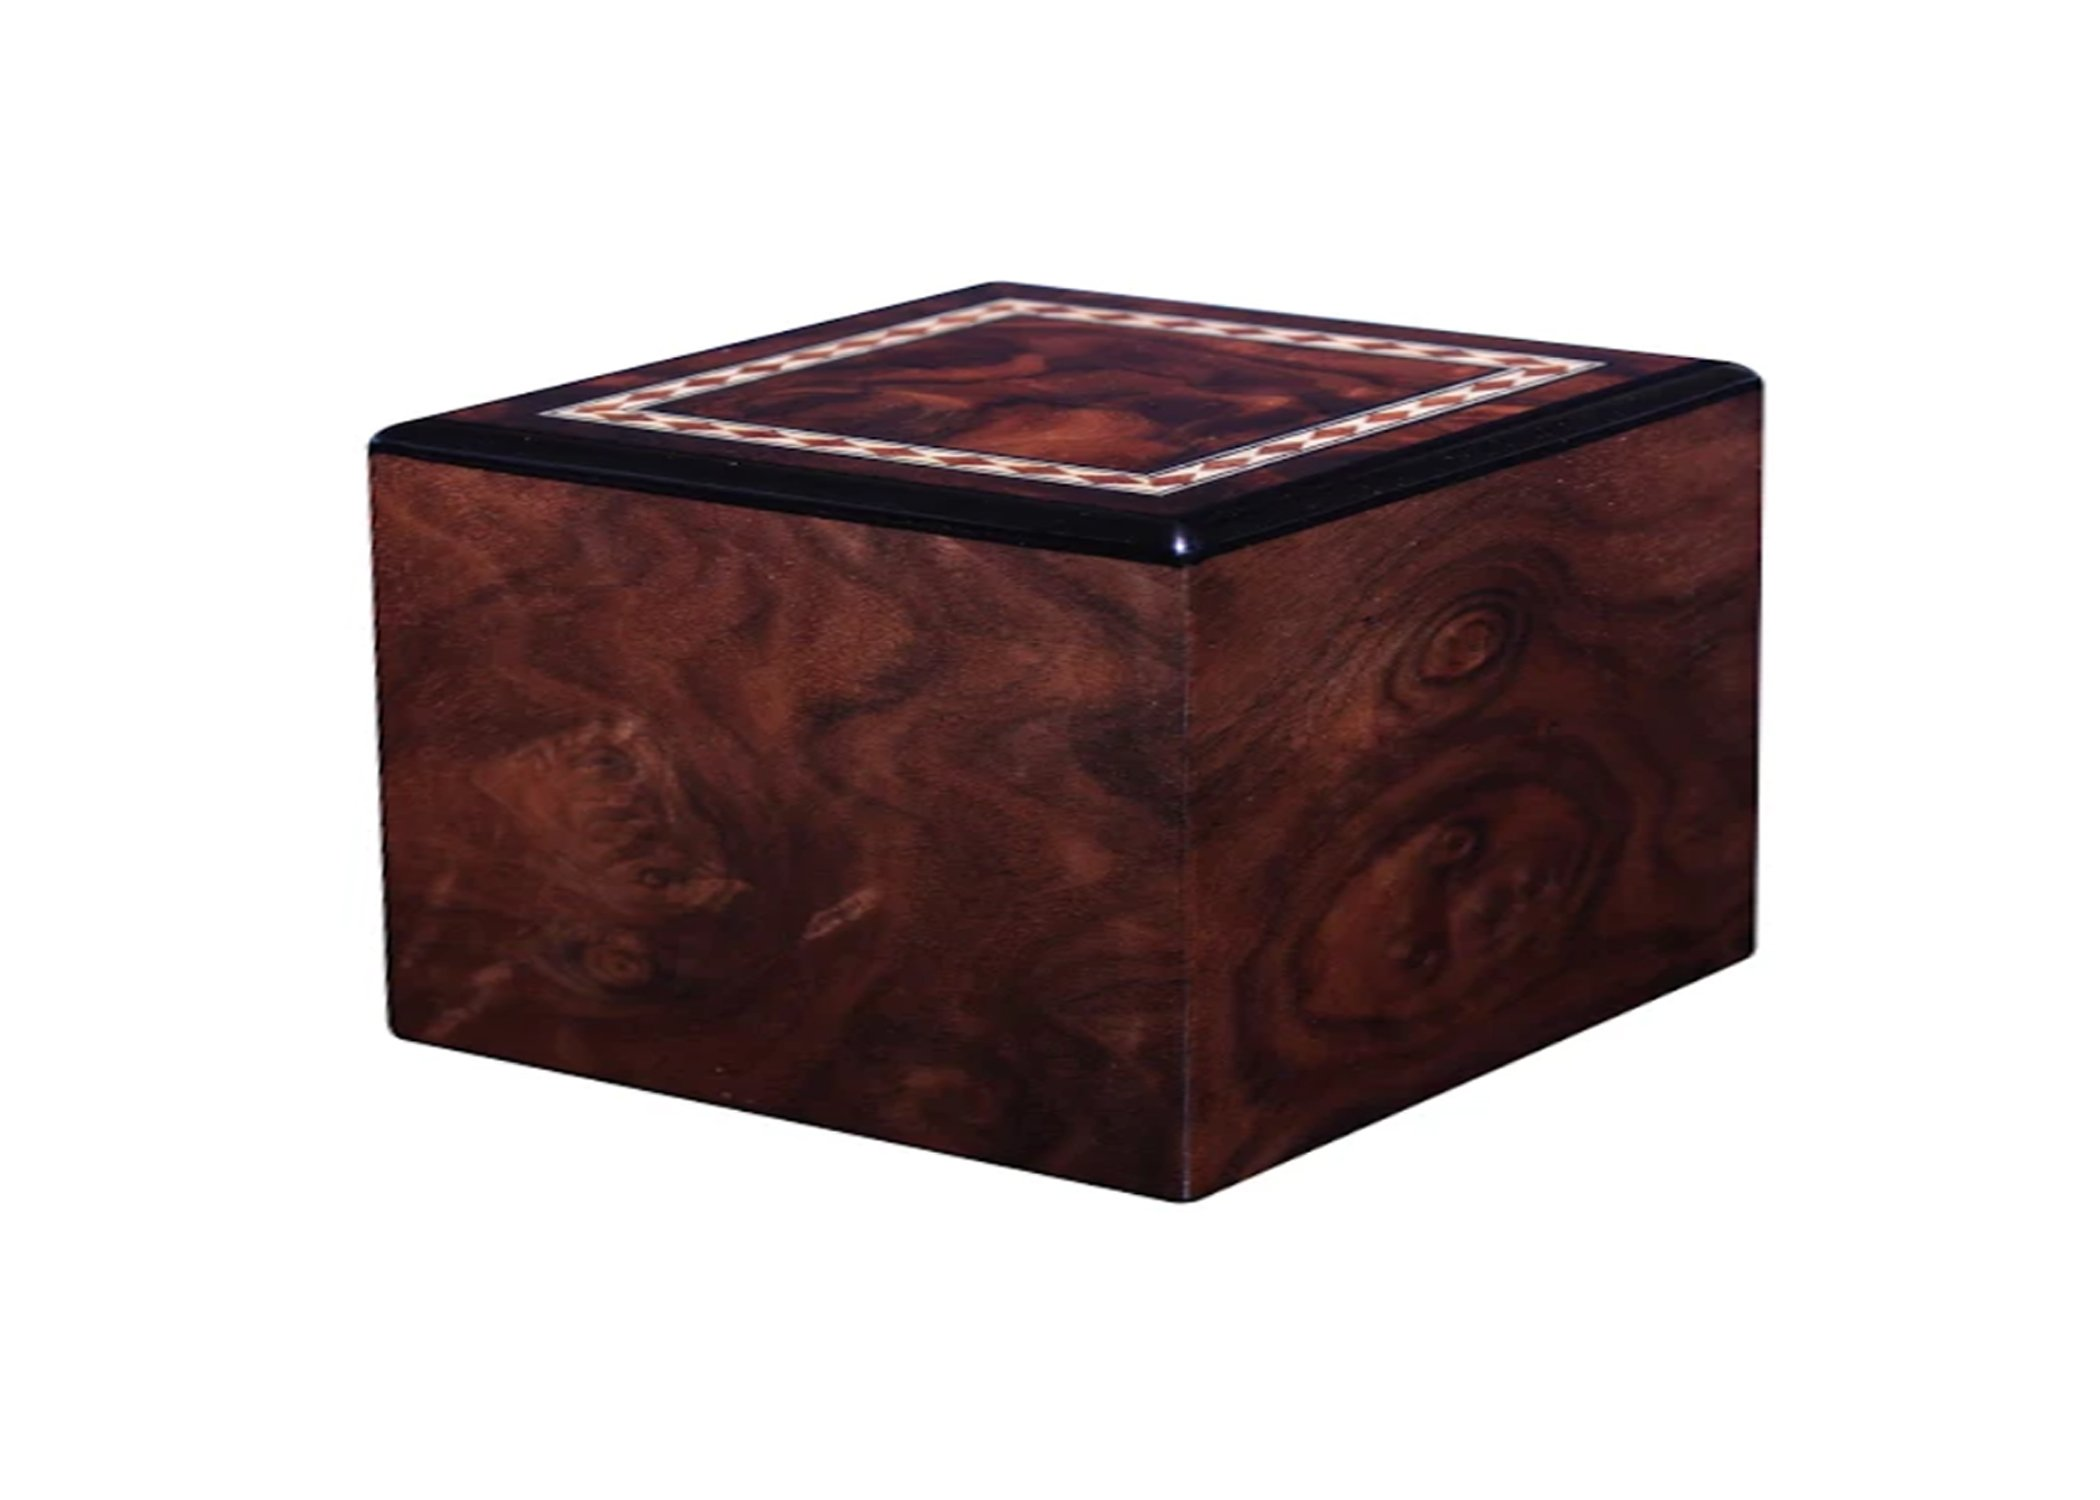 Chateau Urns Dark Burl Wood Urn with Handmade Inlay, Adult Cremation Urn, Amboise Large by Chateau Urns (Image #1)